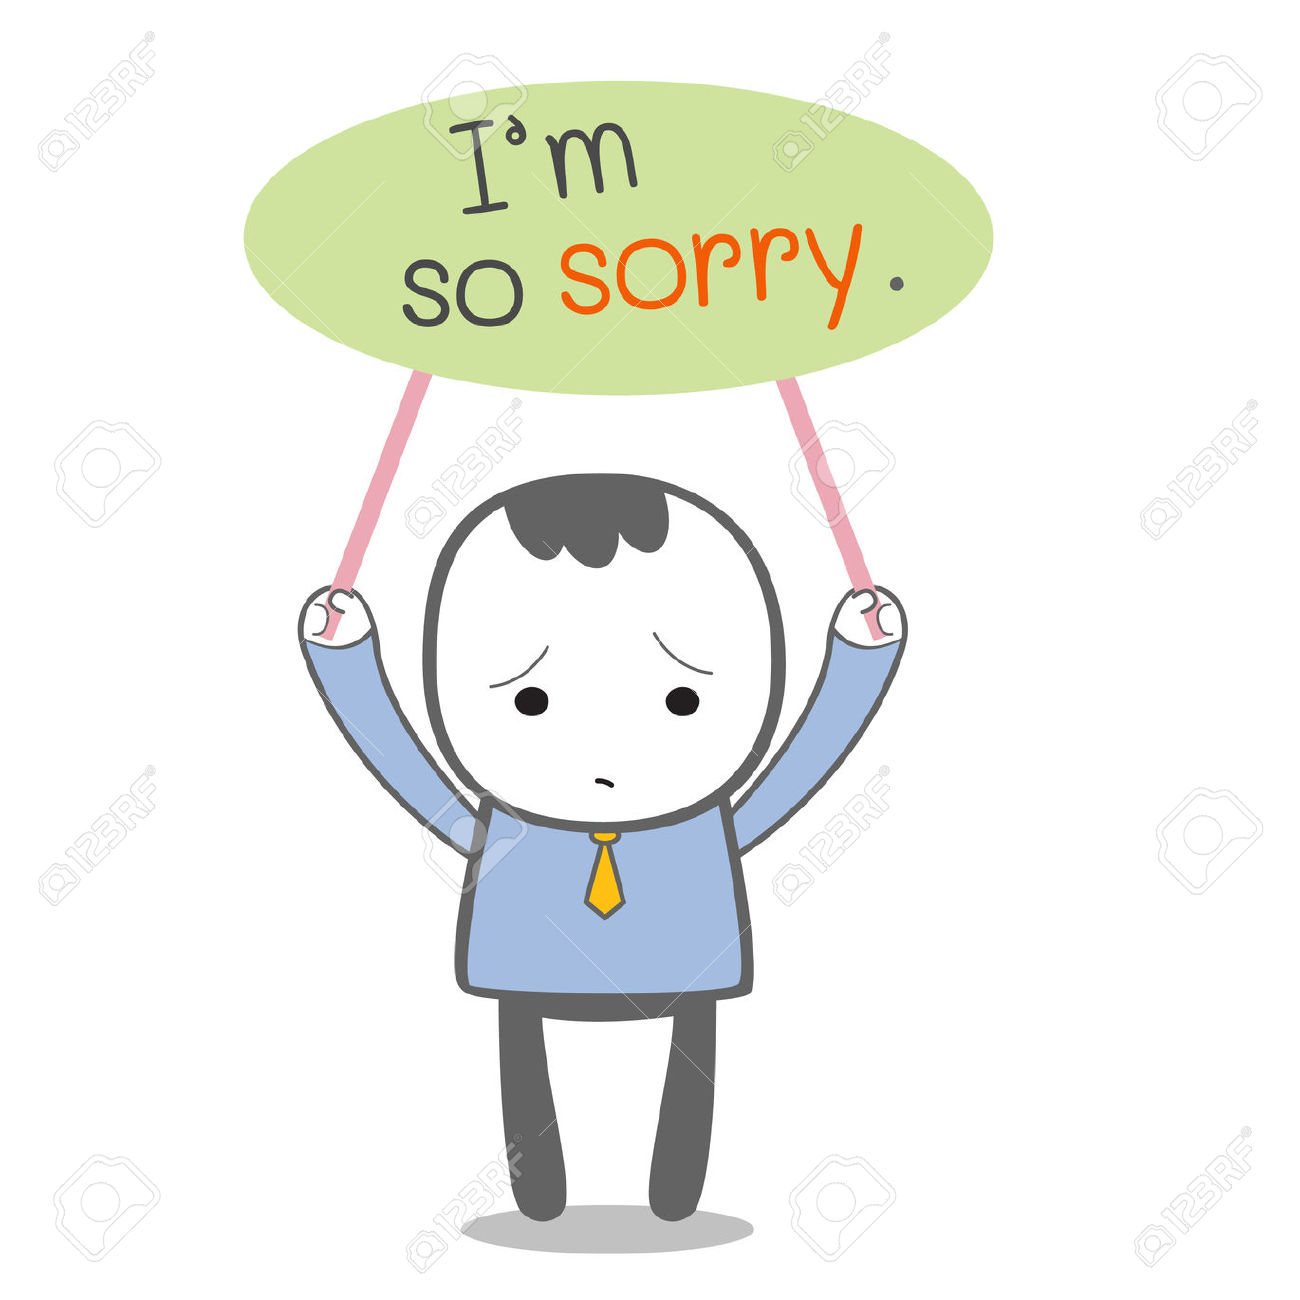 Sadness clipart im sorry Sorry Apology Clipart message apology: